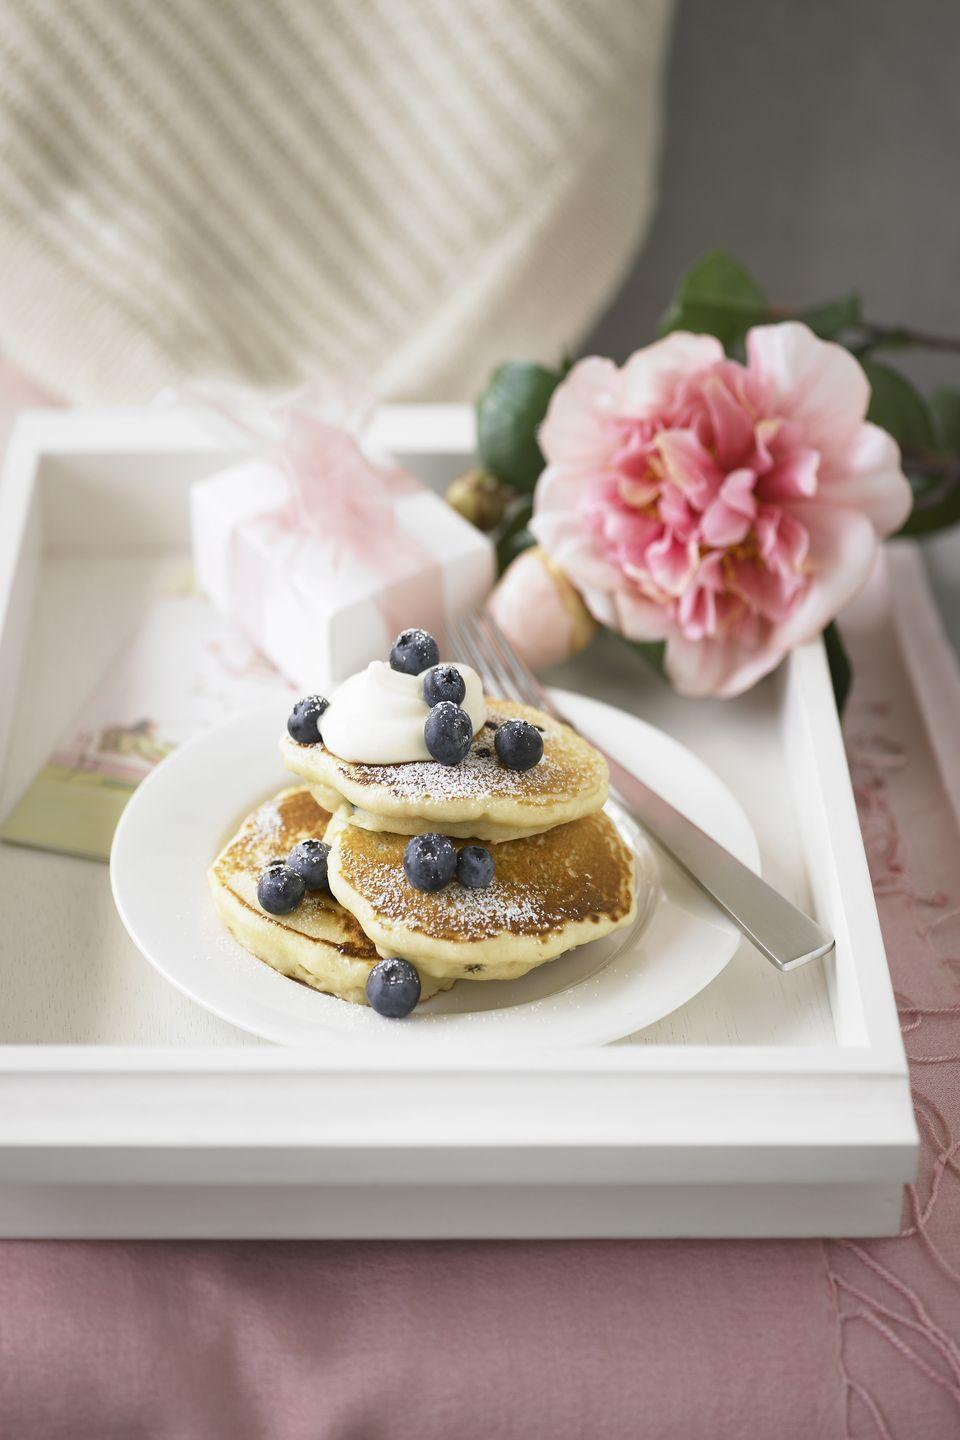 "<p>Start off Mom's special day by ordering up a tray full of her favorite breakfast goodies and having them delivered right to her bed. <br></p><p><strong><a href=""https://www.countryliving.com/food-drinks/g1681/mothers-day-breakfast-in-bed/"" rel=""nofollow noopener"" target=""_blank"" data-ylk=""slk:Or make our best Mother's Day breakfast-in-bed recipes."" class=""link rapid-noclick-resp"">Or make our best Mother's Day breakfast-in-bed recipes.</a></strong></p>"